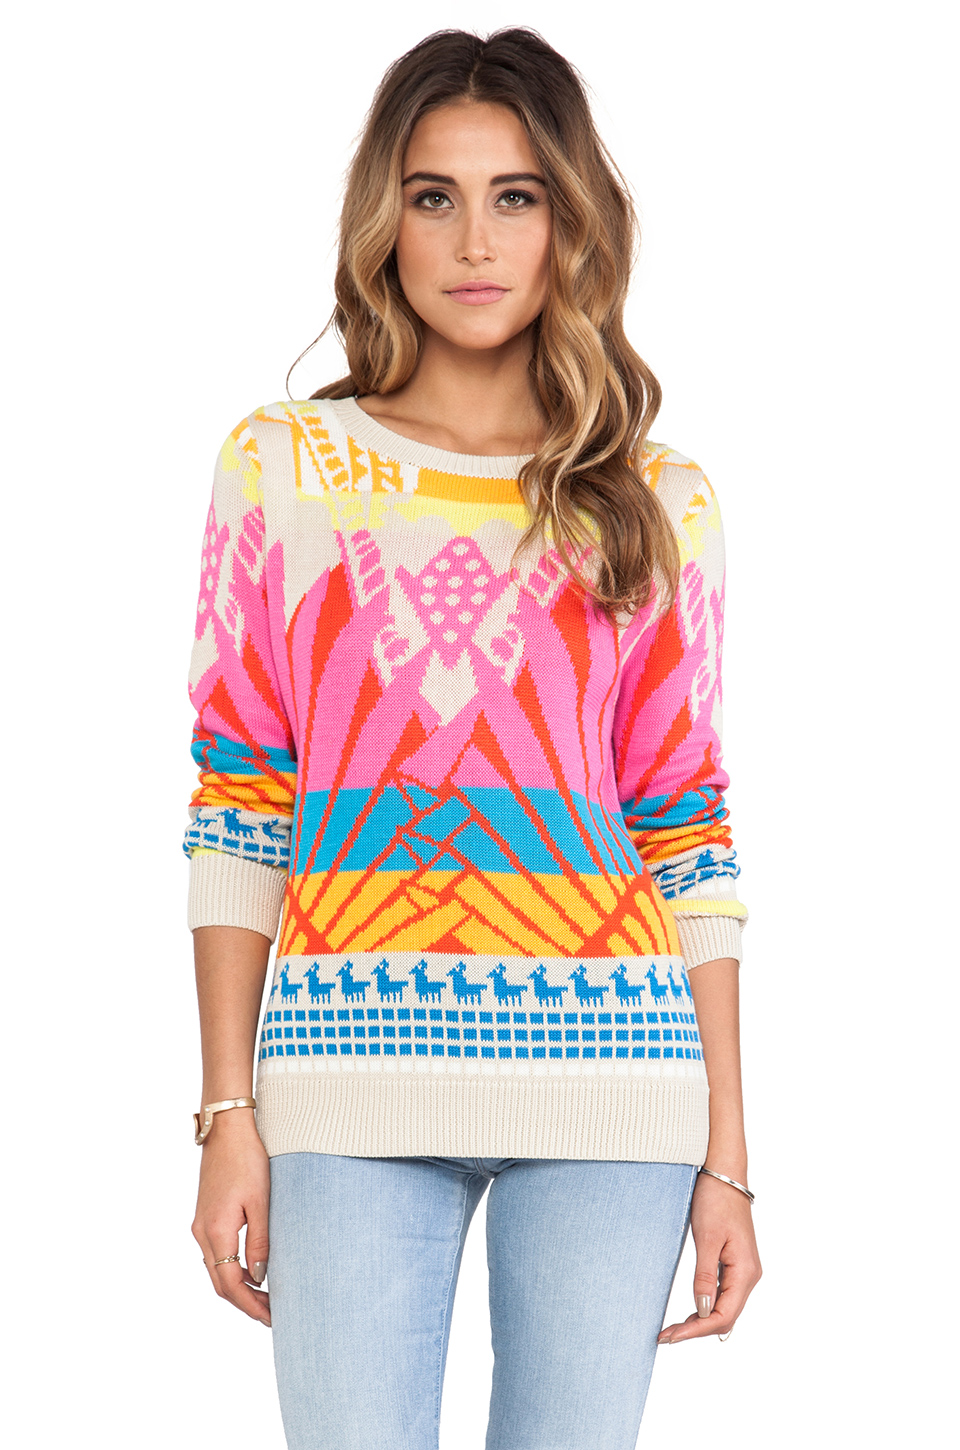 Mara Hoffman Pullover Sweater in Sunrise | REVOLVE